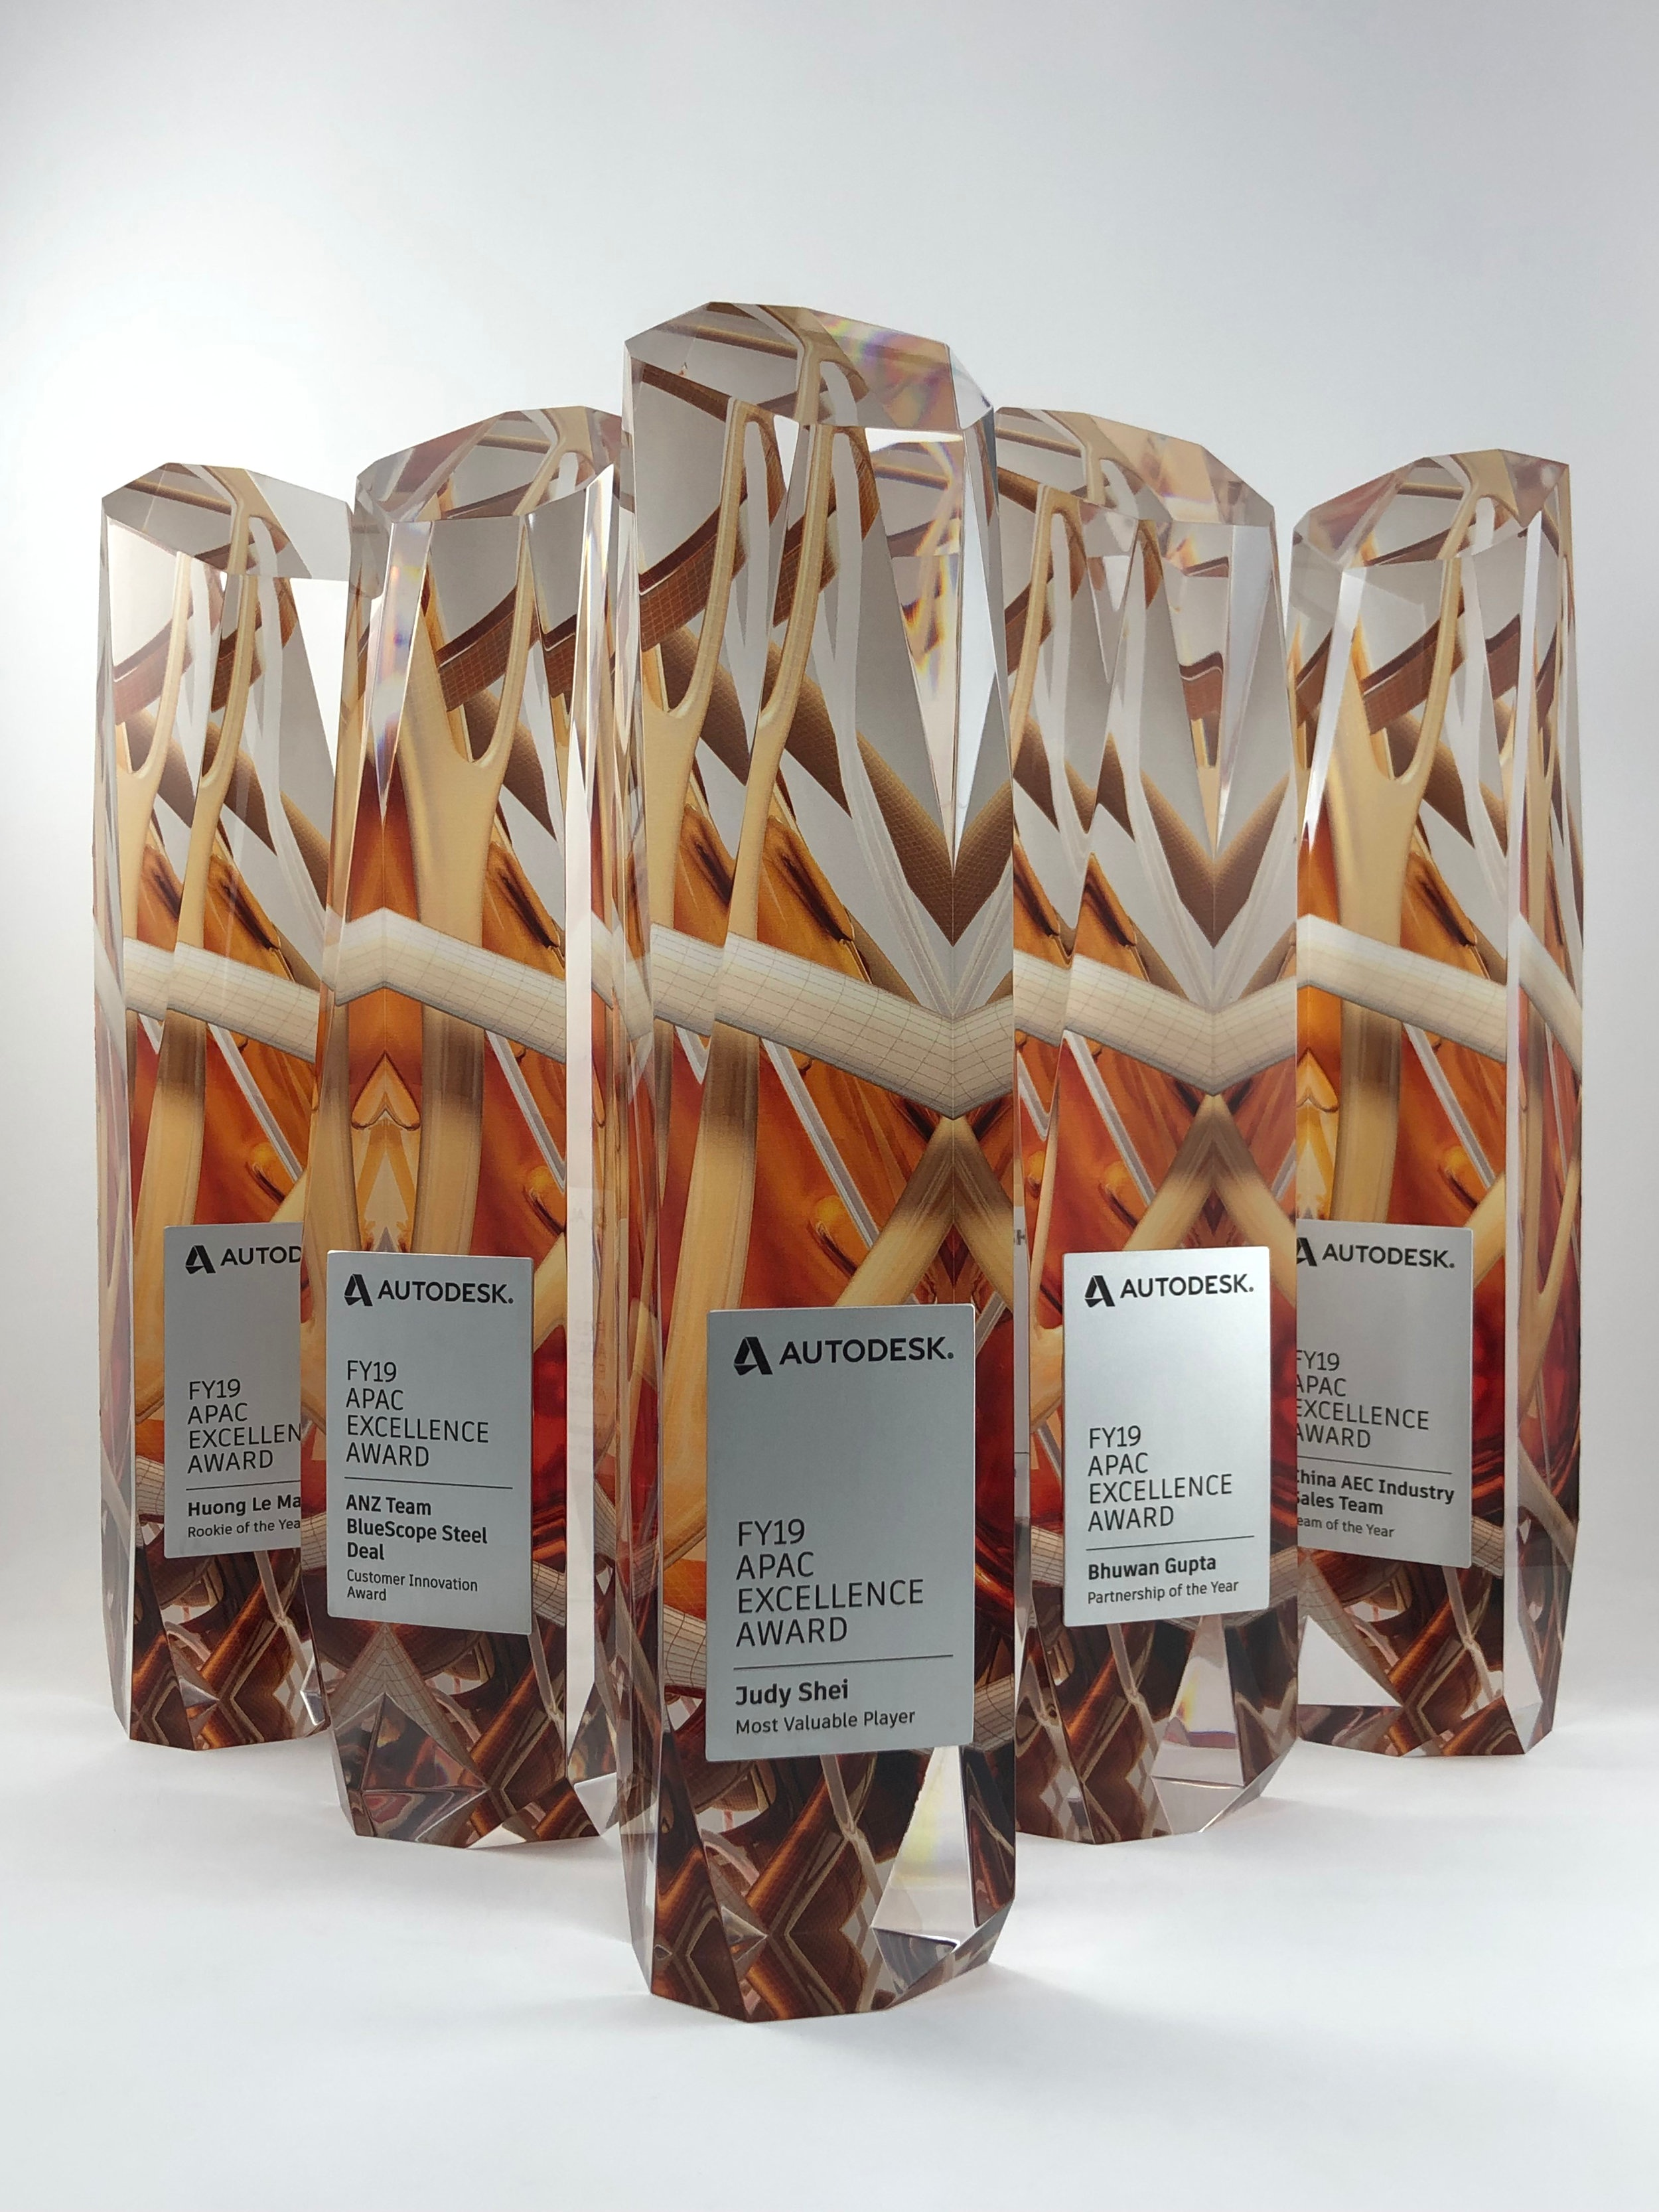 autodesk-apac-excellence-awards-acrylic-metal-graphic-art-print-trophy-05.jpg